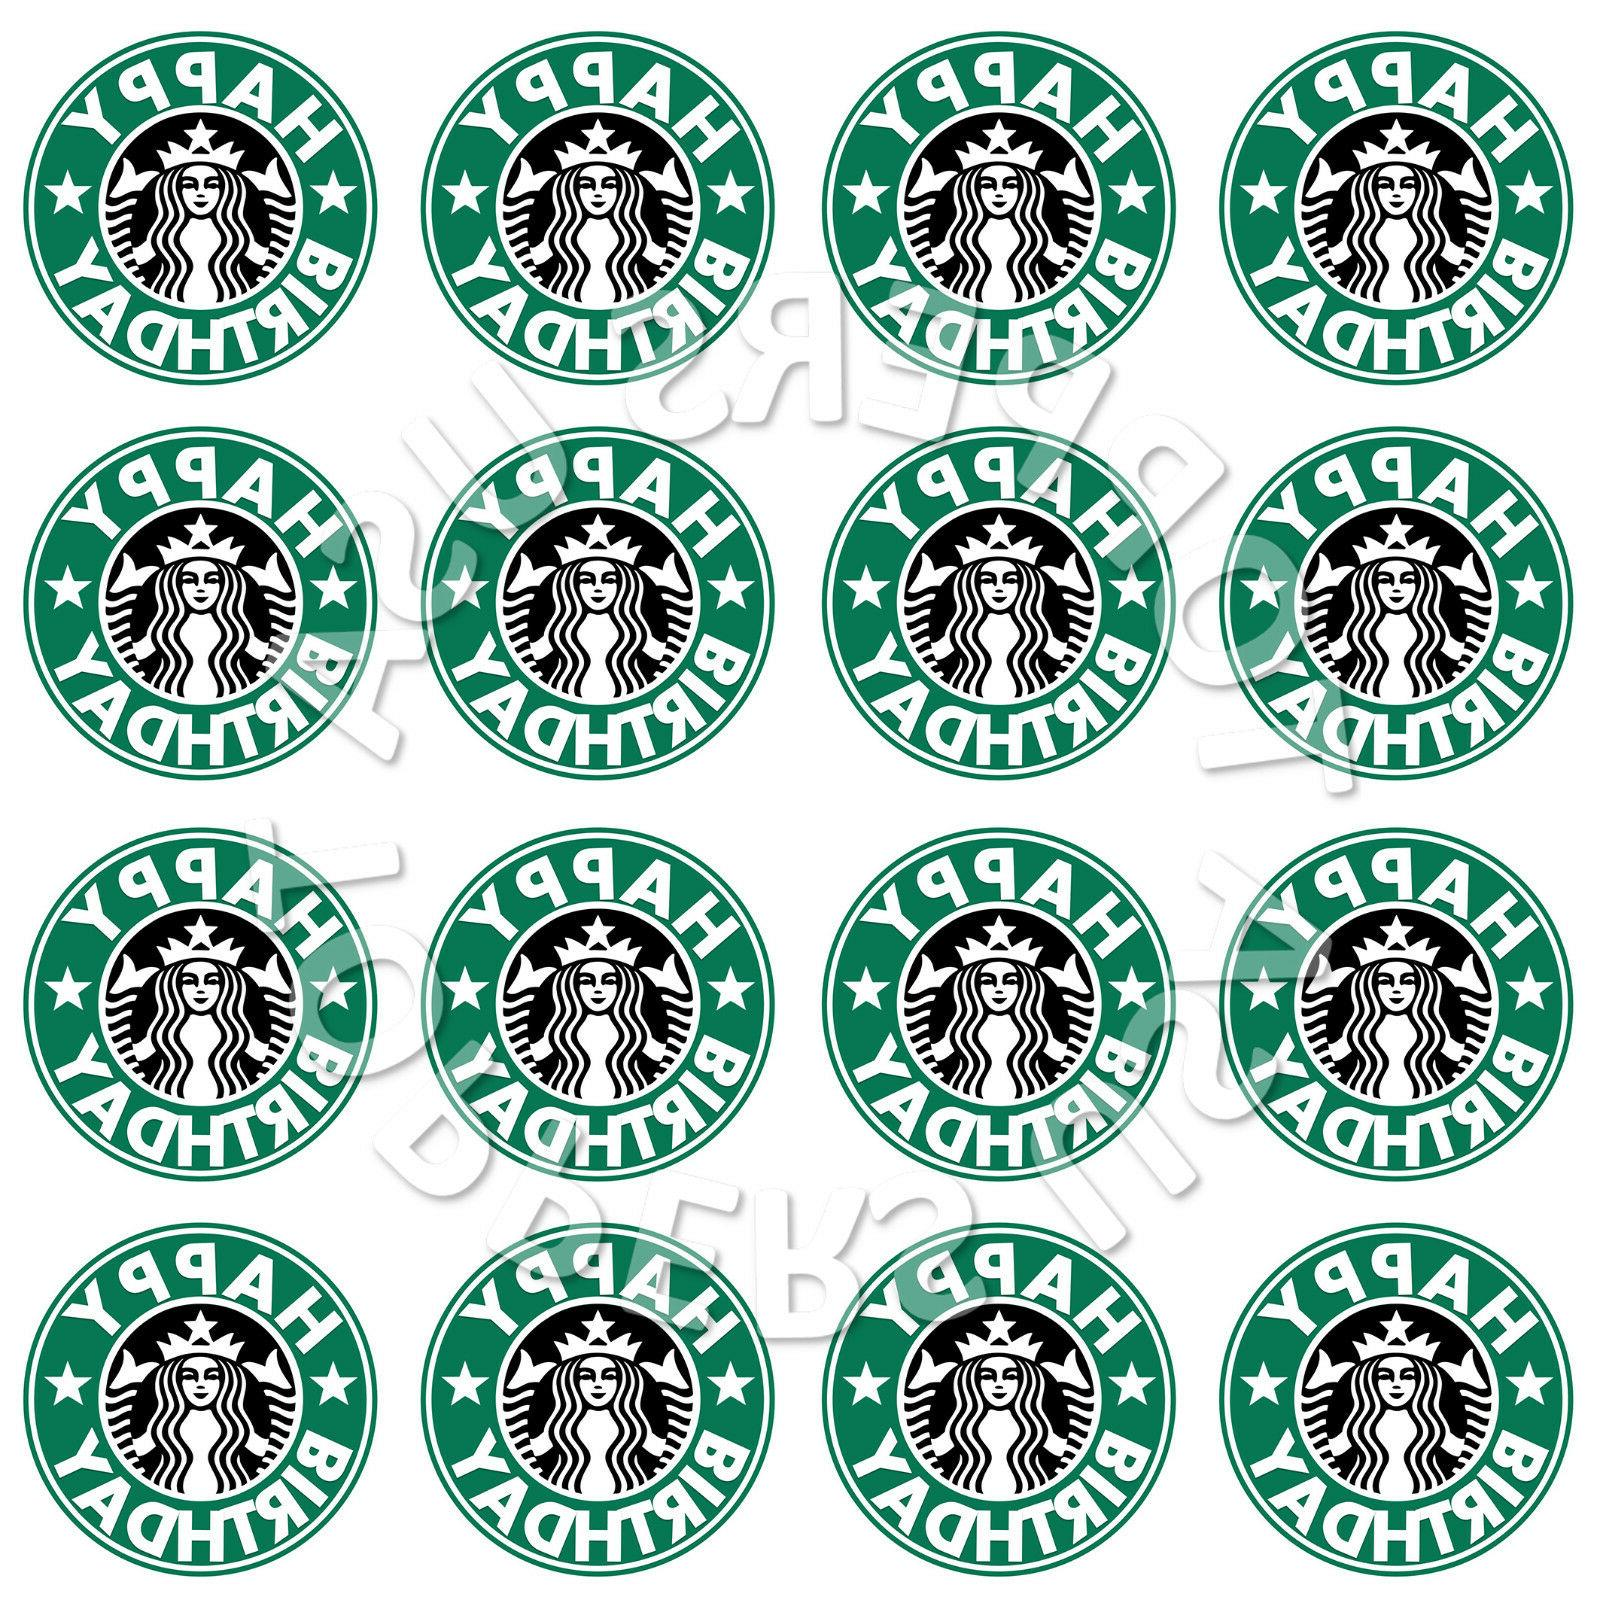 16x edible starbucks logo birthday party cupcake